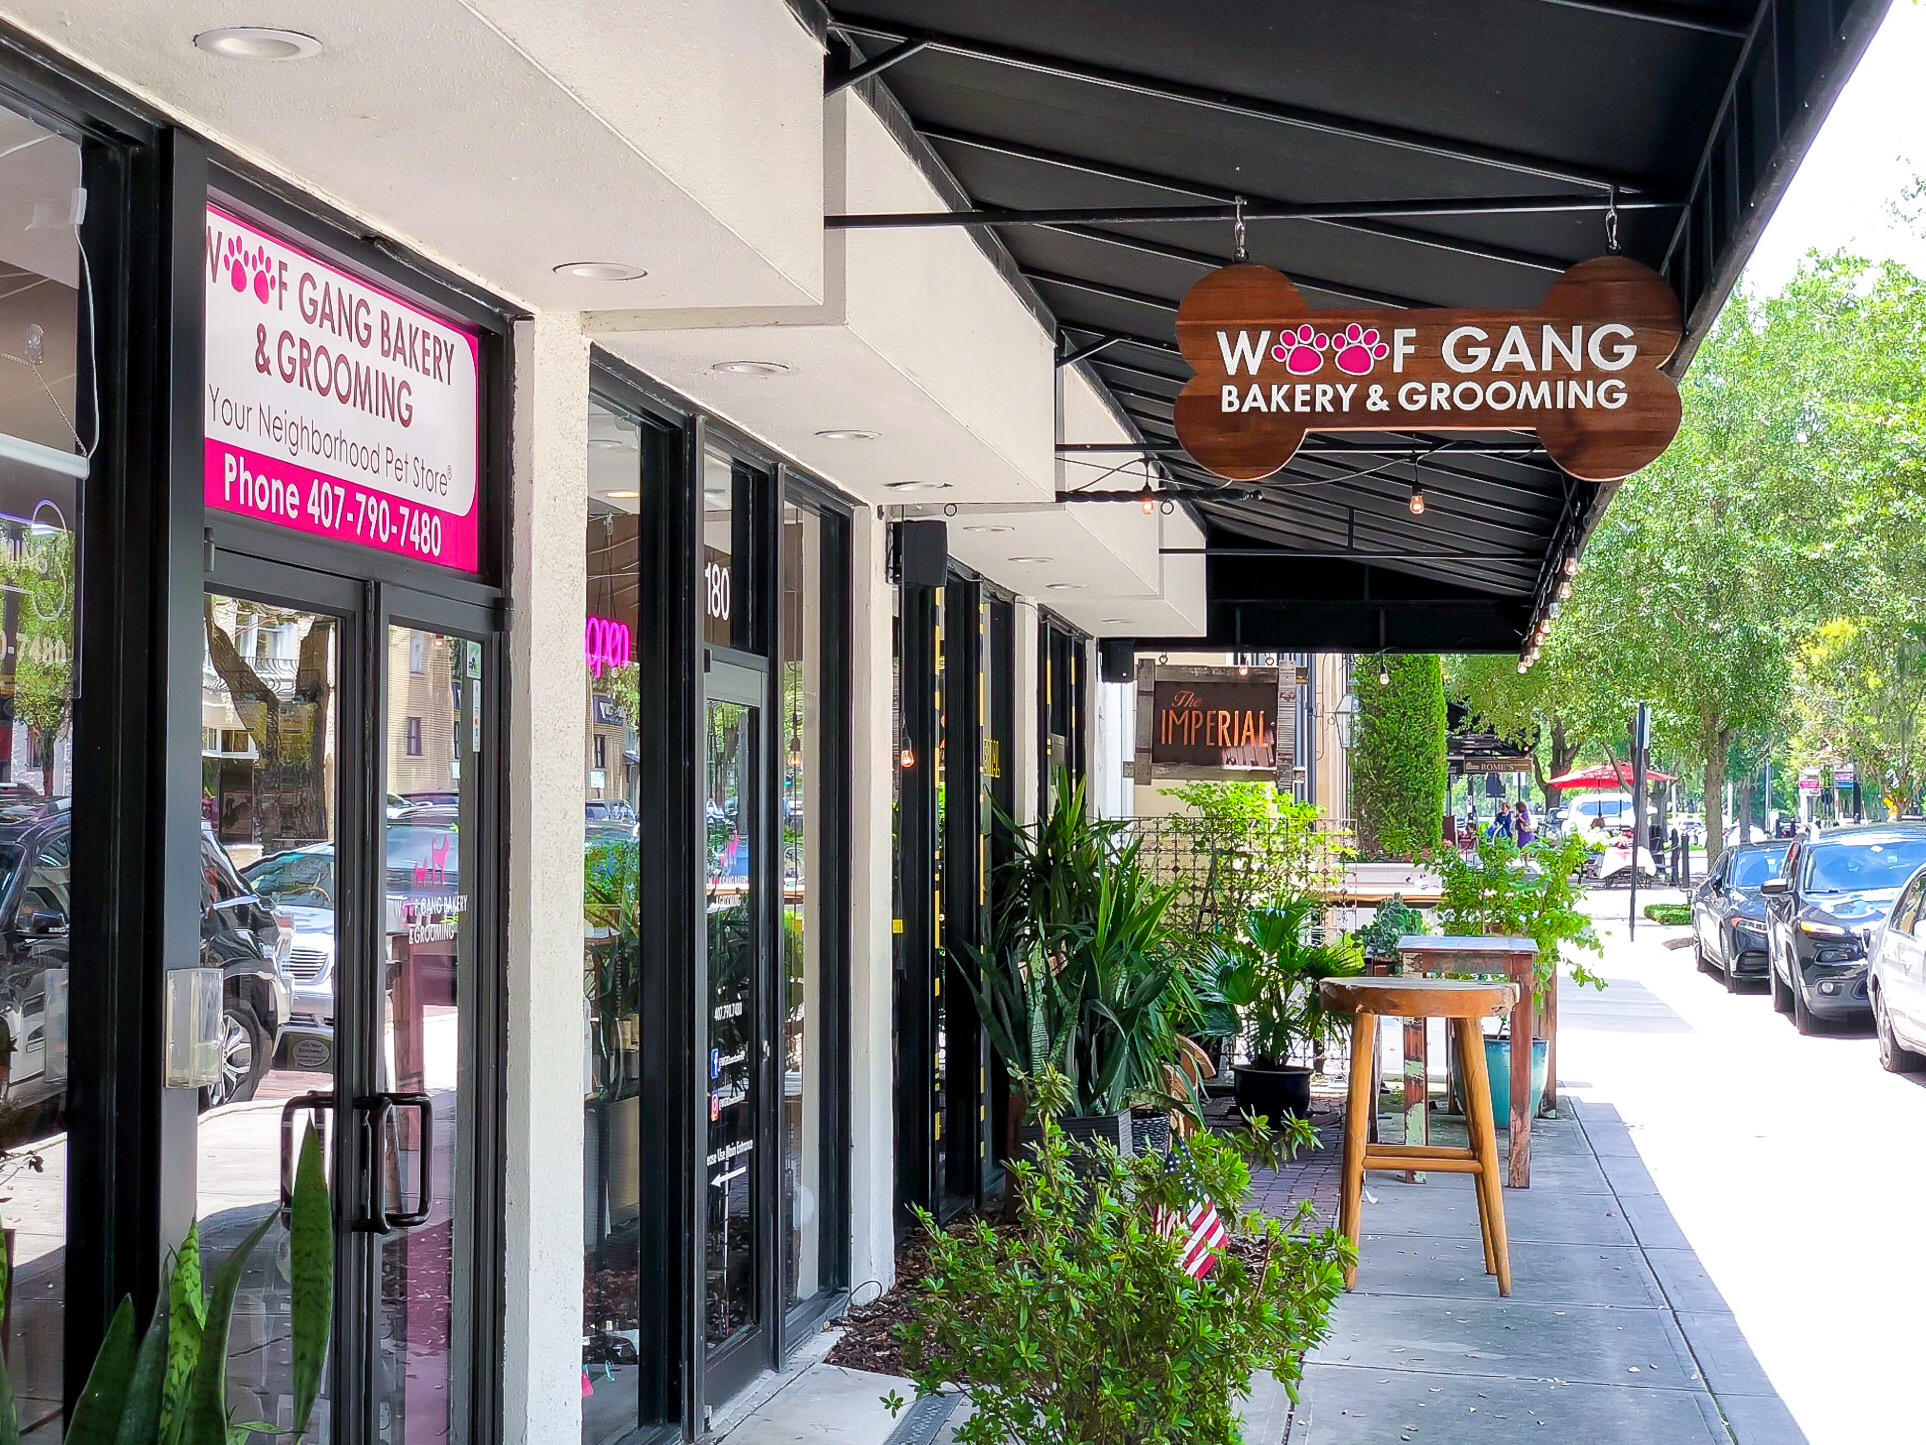 Building with black roof, white walls, green landscape, and a pink sign that says Woof Gang